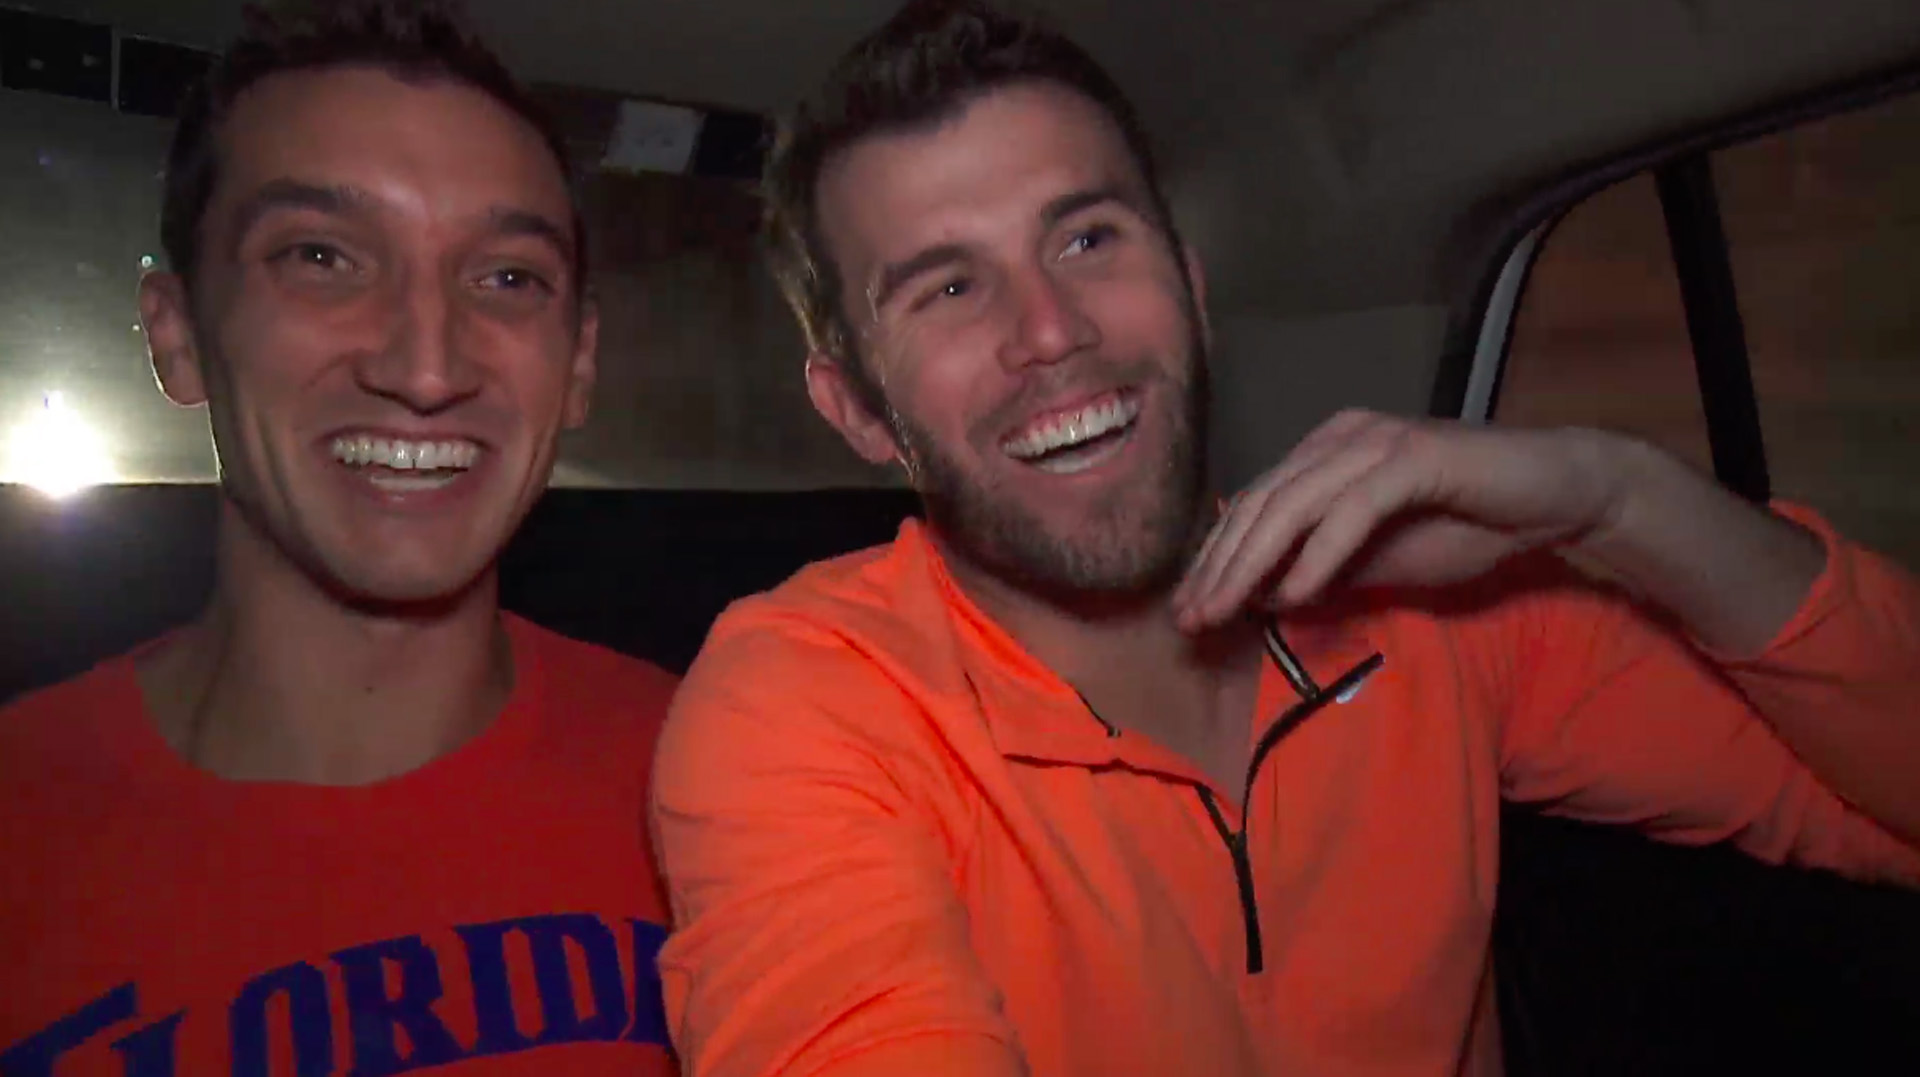 For Brodie, The Amazing Race has always been a family thing.